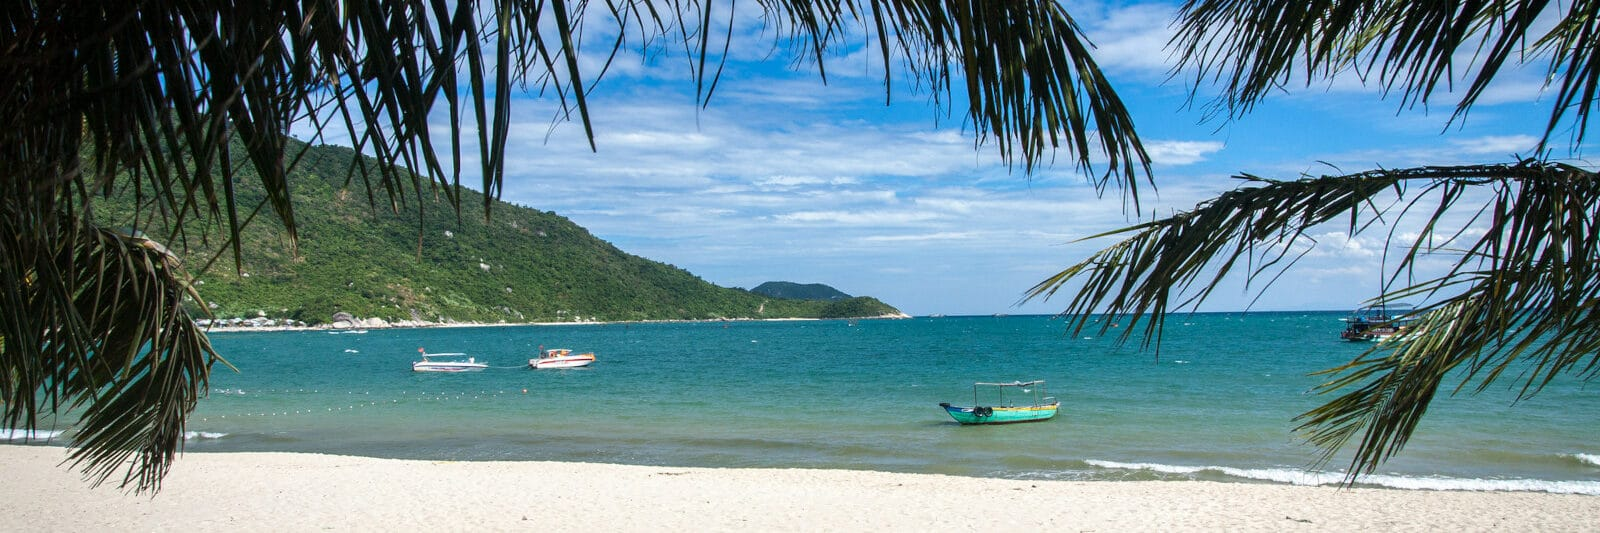 Image of a white sand beach on one of the cham islands in vietnam